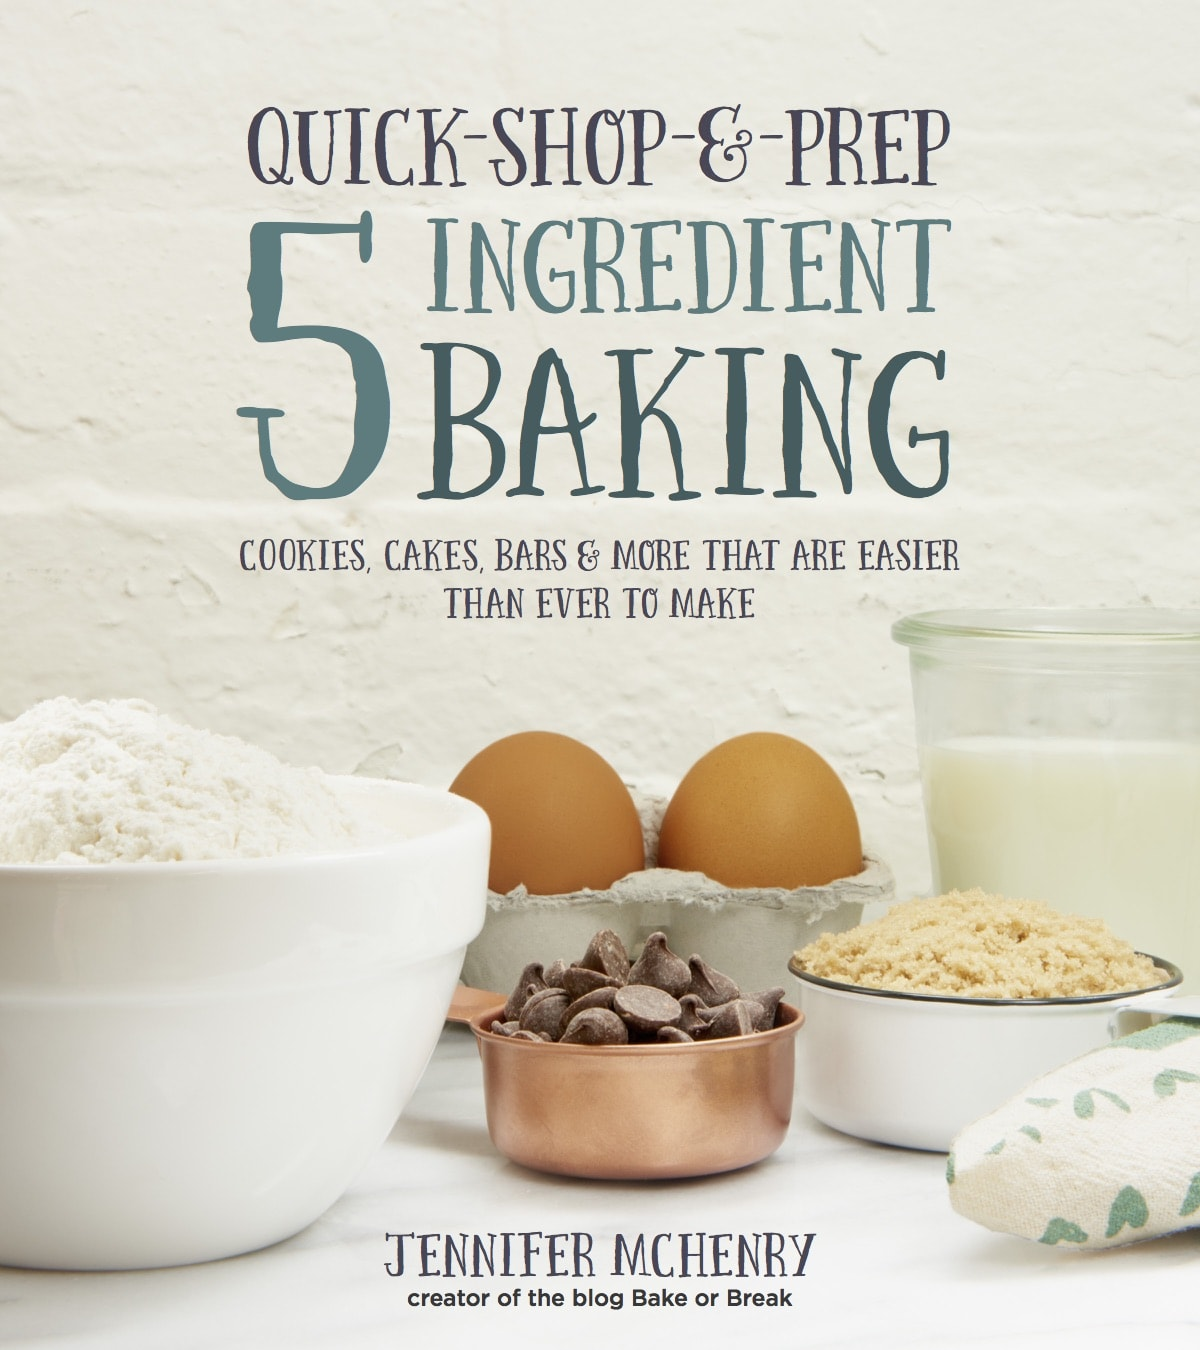 Quick-Shop-&-Prep 5 Ingredient Baking by Jennifer McHenry